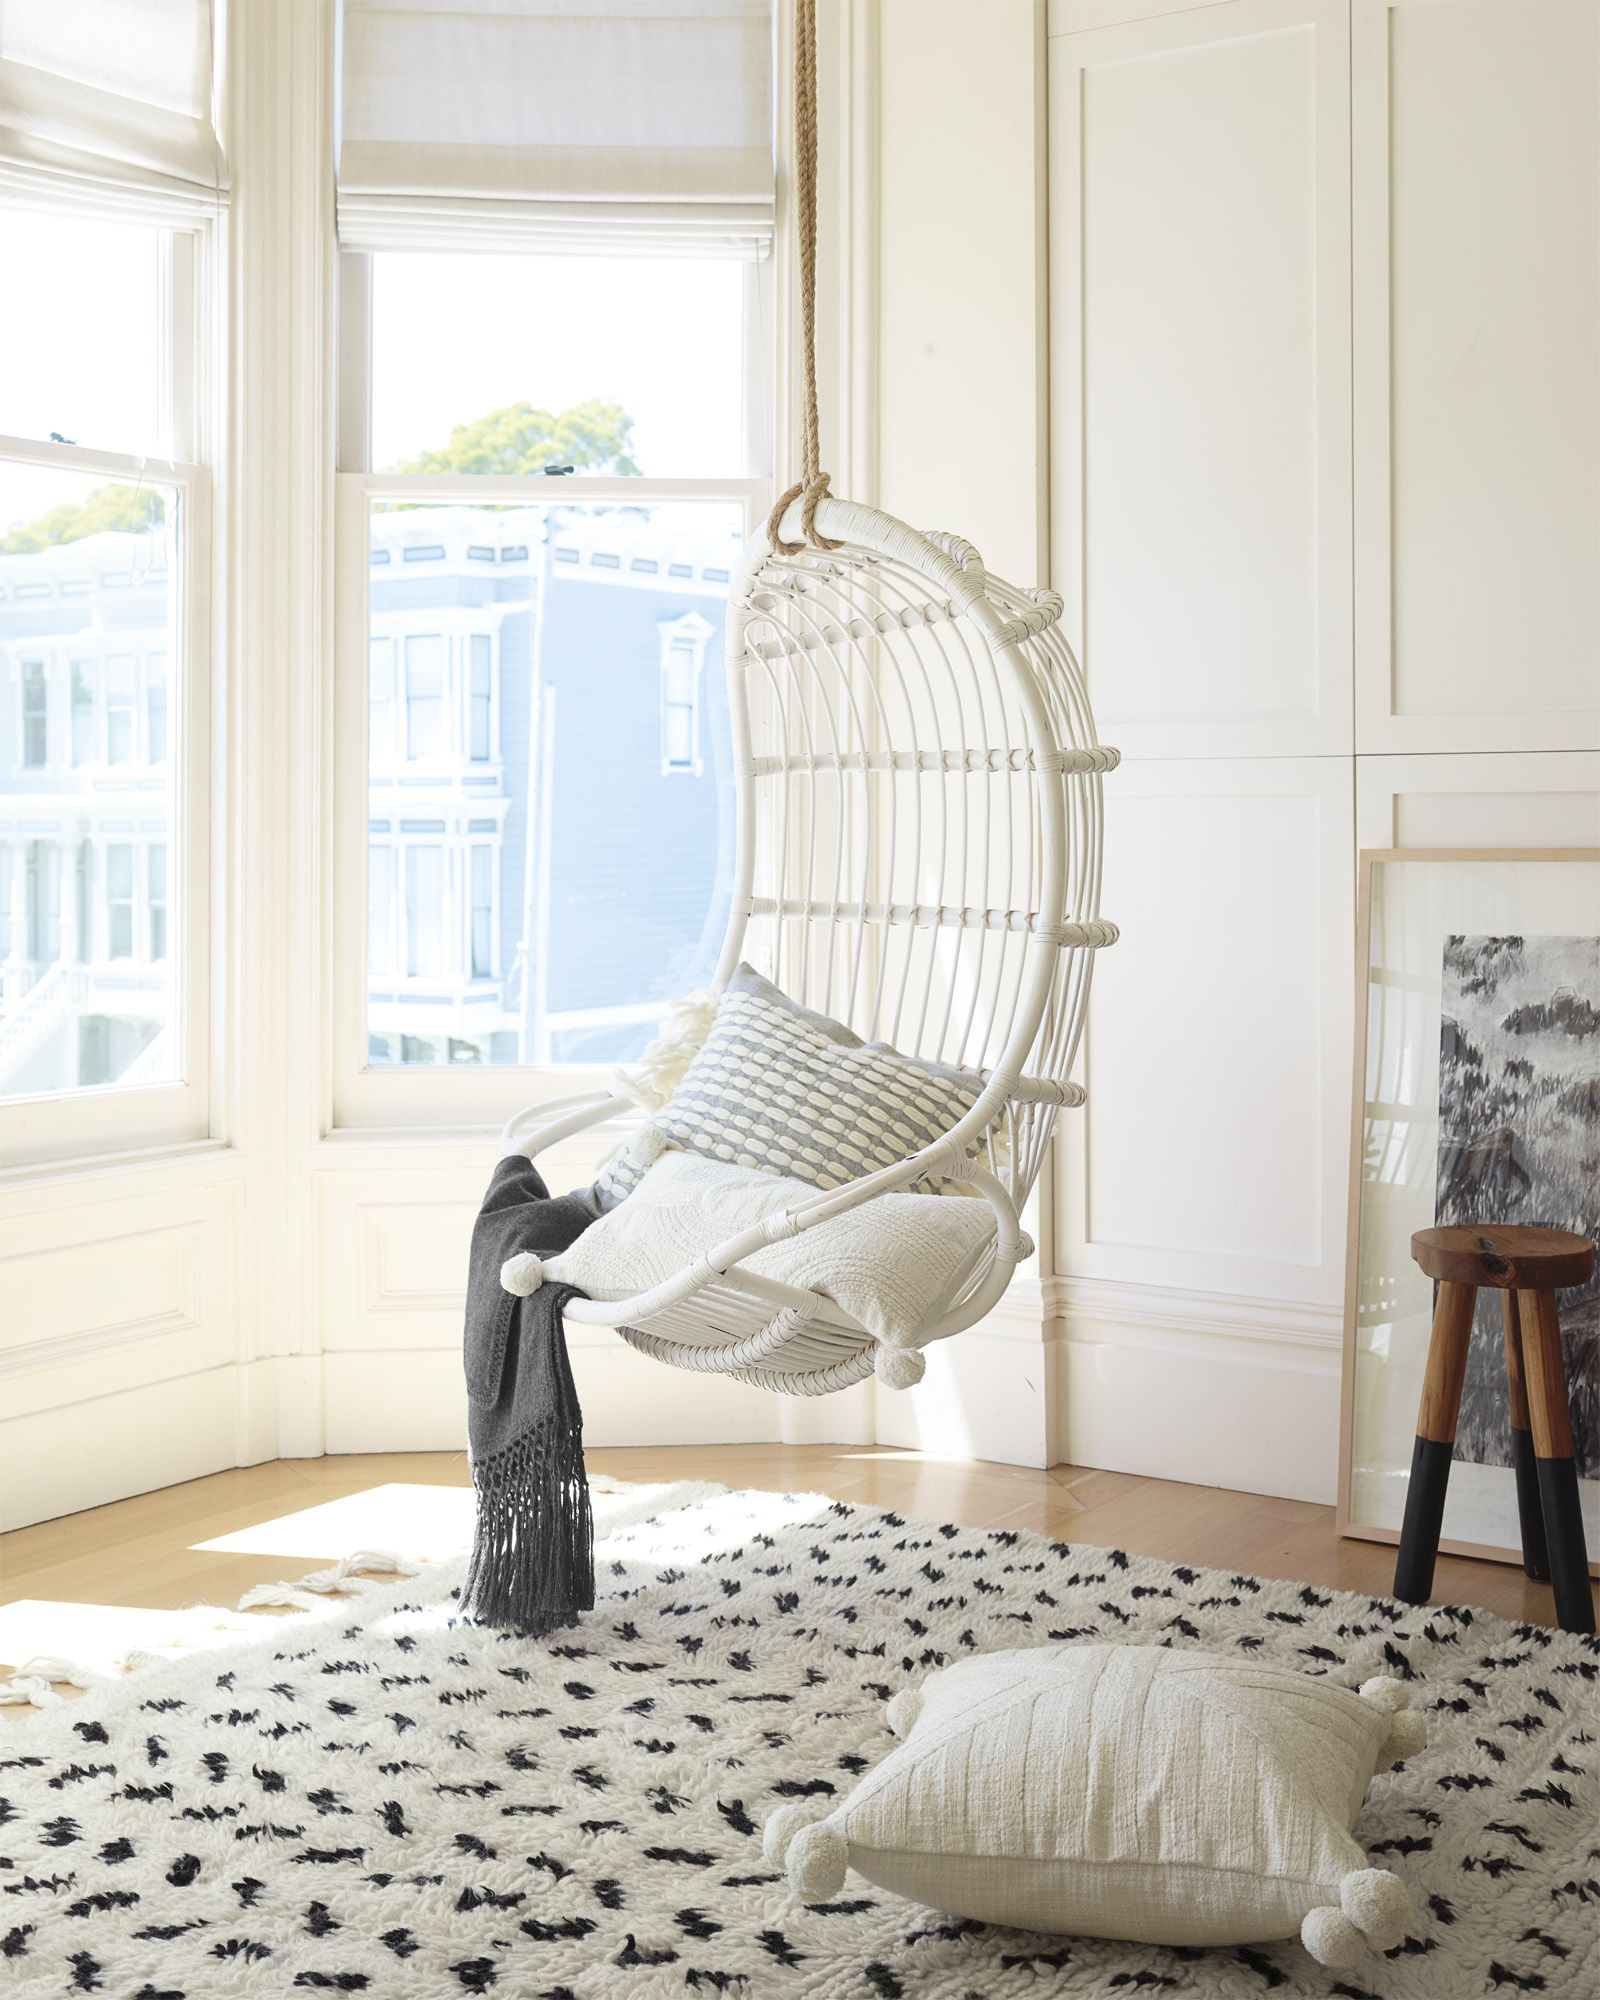 Hanging Rattan Chair & Huxley Wool Rug via Serena & Lily